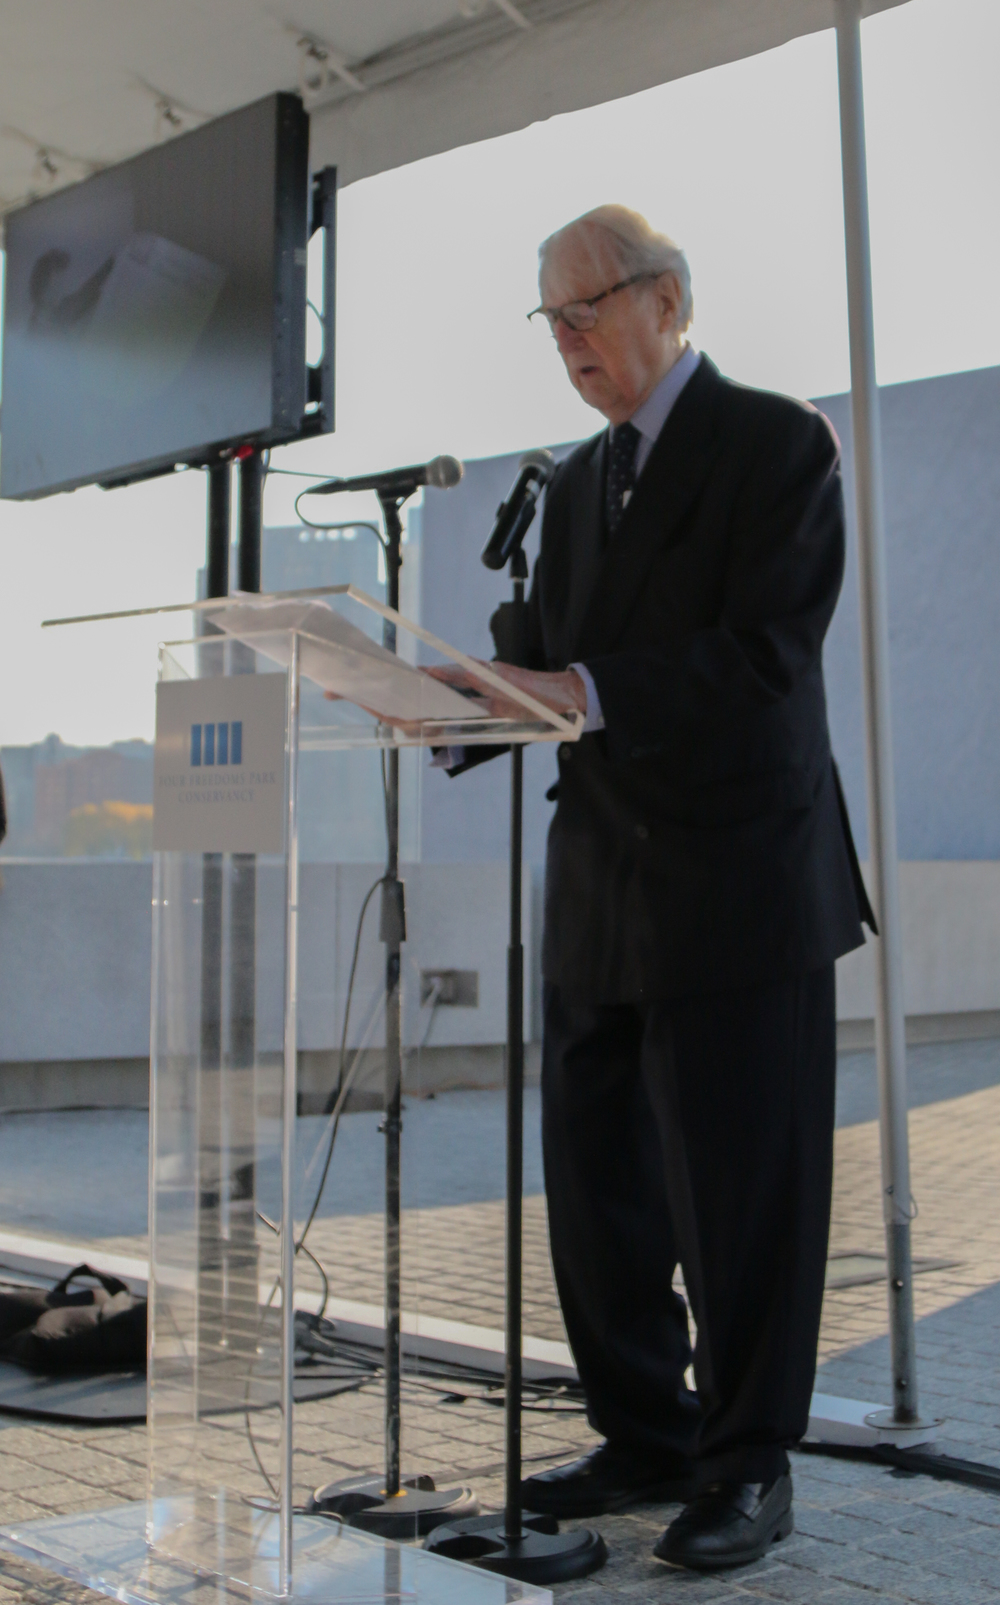 Ambassador William vanden Heuvel, Founder & Chair Emeritus of Four Freedoms Park